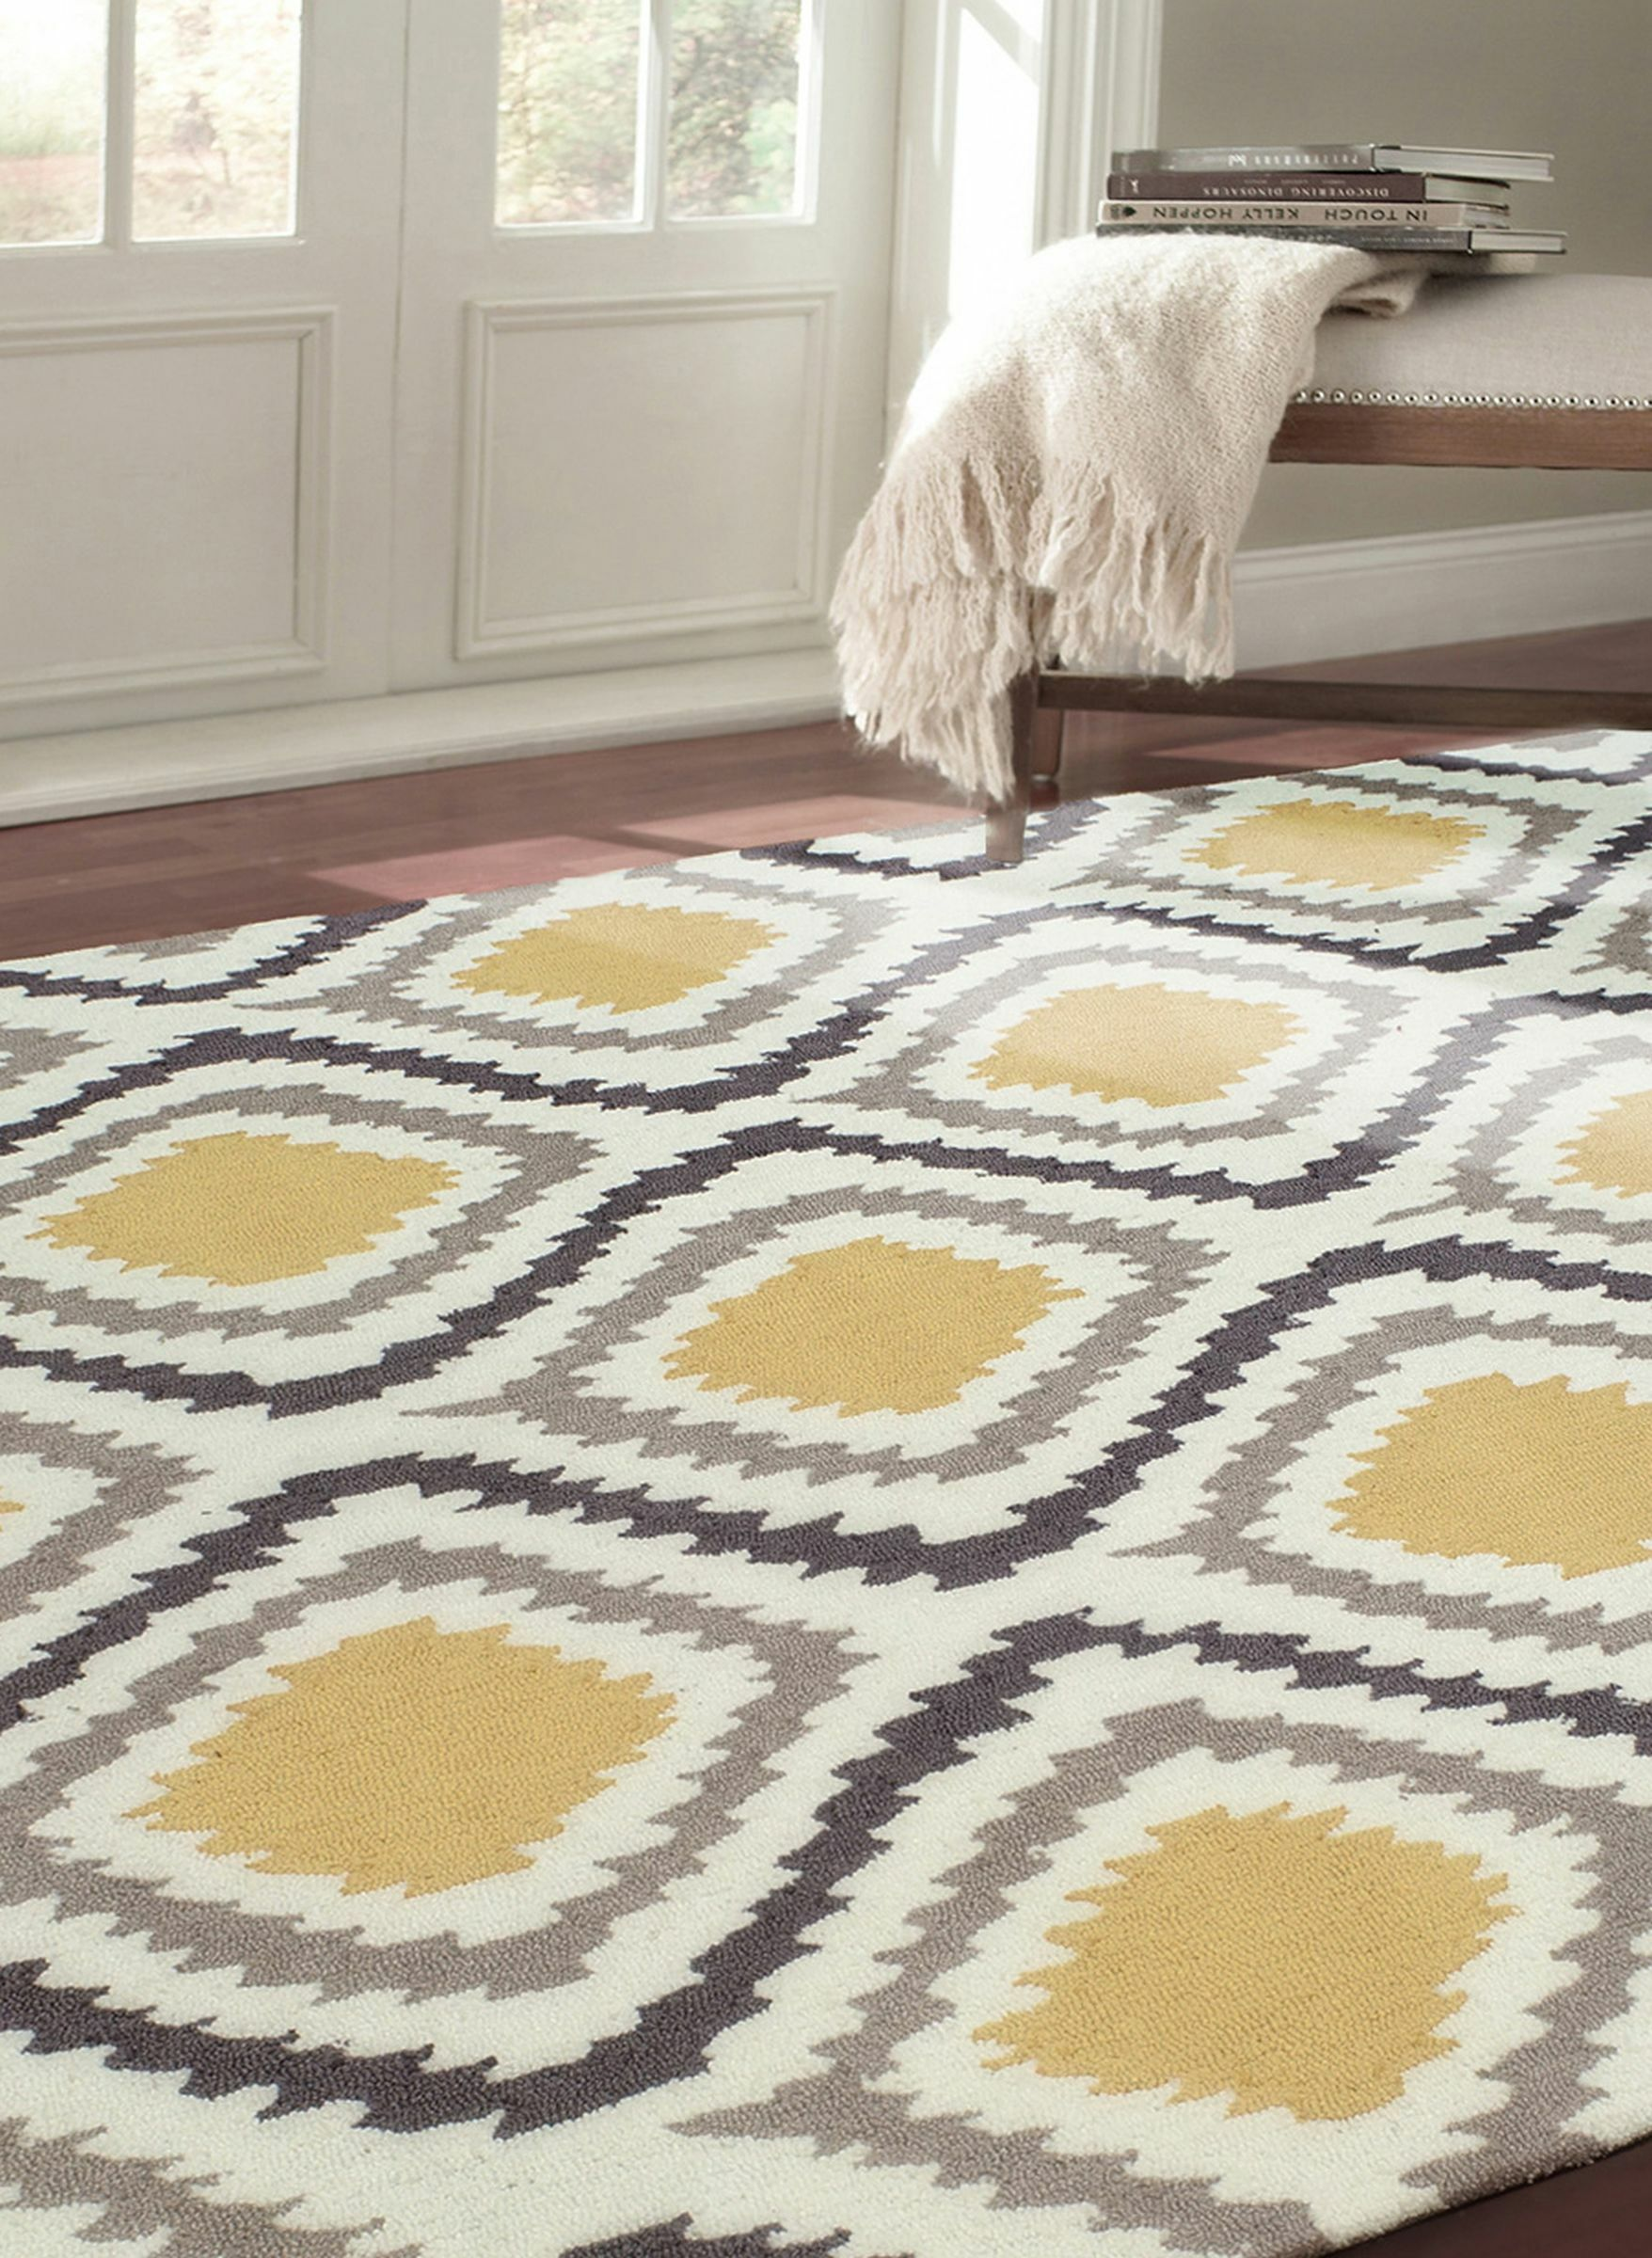 Garrard Hand-Woven Yellow Area Rug Rug Size: Rectangle 7'6